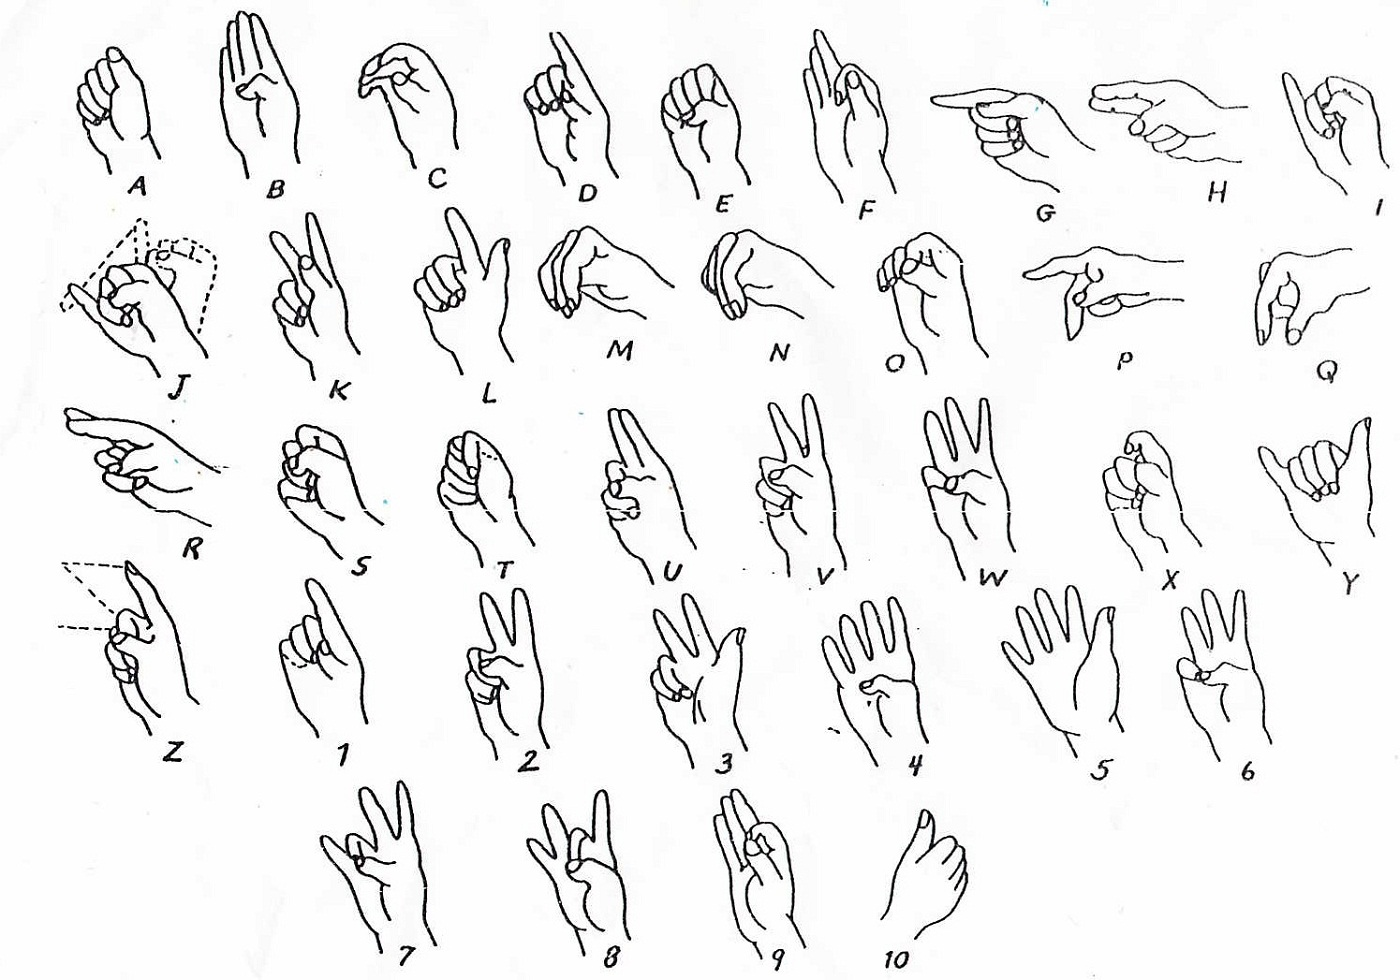 sign Language images 2016